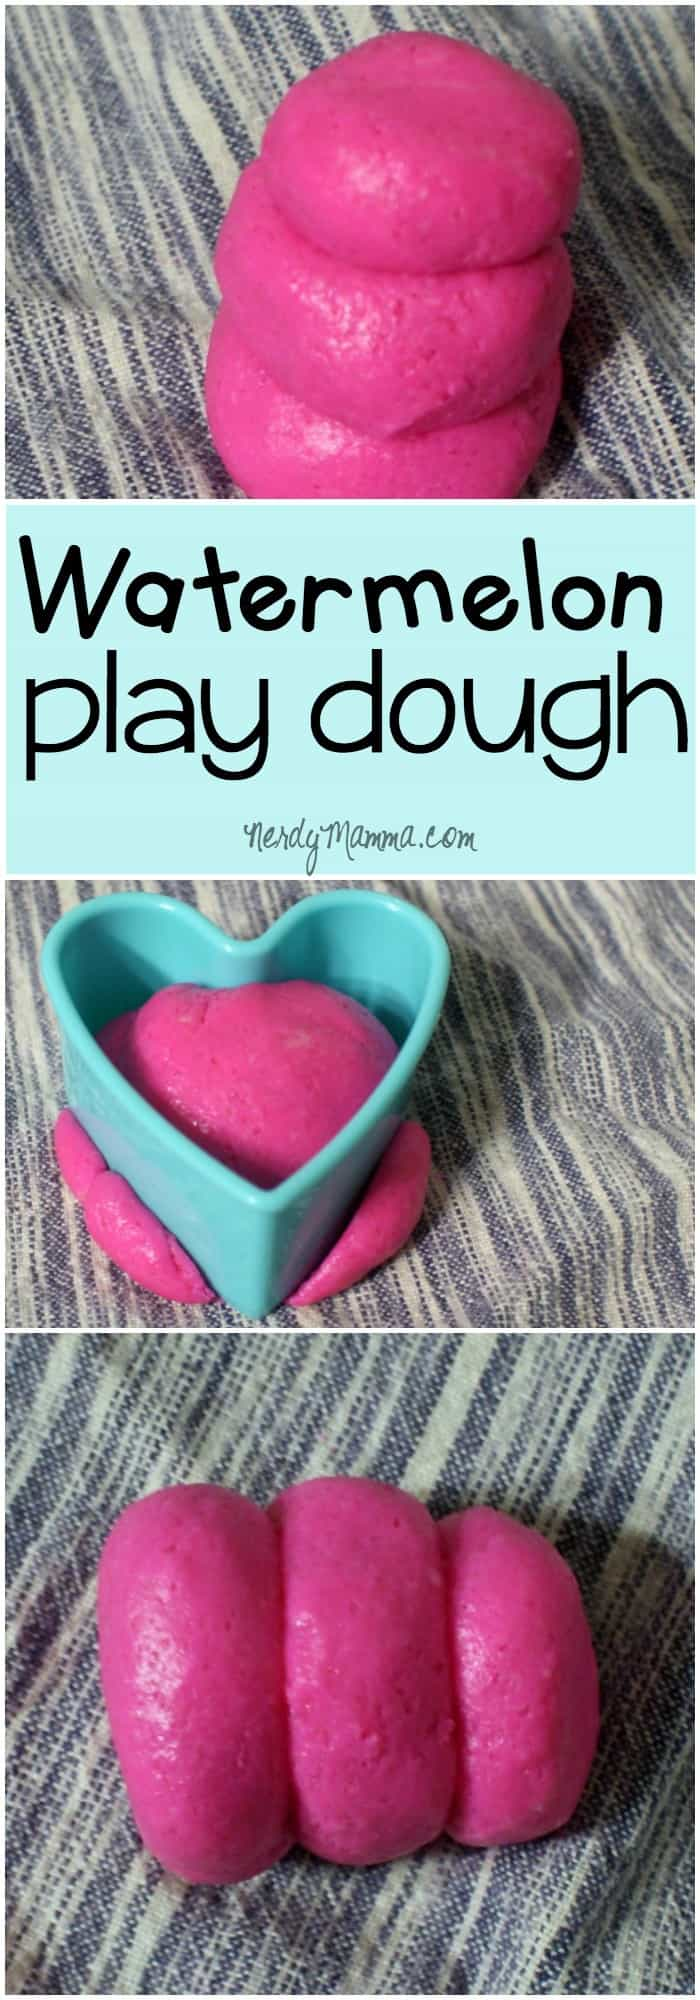 My toddler thought this awesome watermelon taste-safe play dough was just the funnest thing. She loves pink and this recipe is PINK, PINK, PINK! LOL!